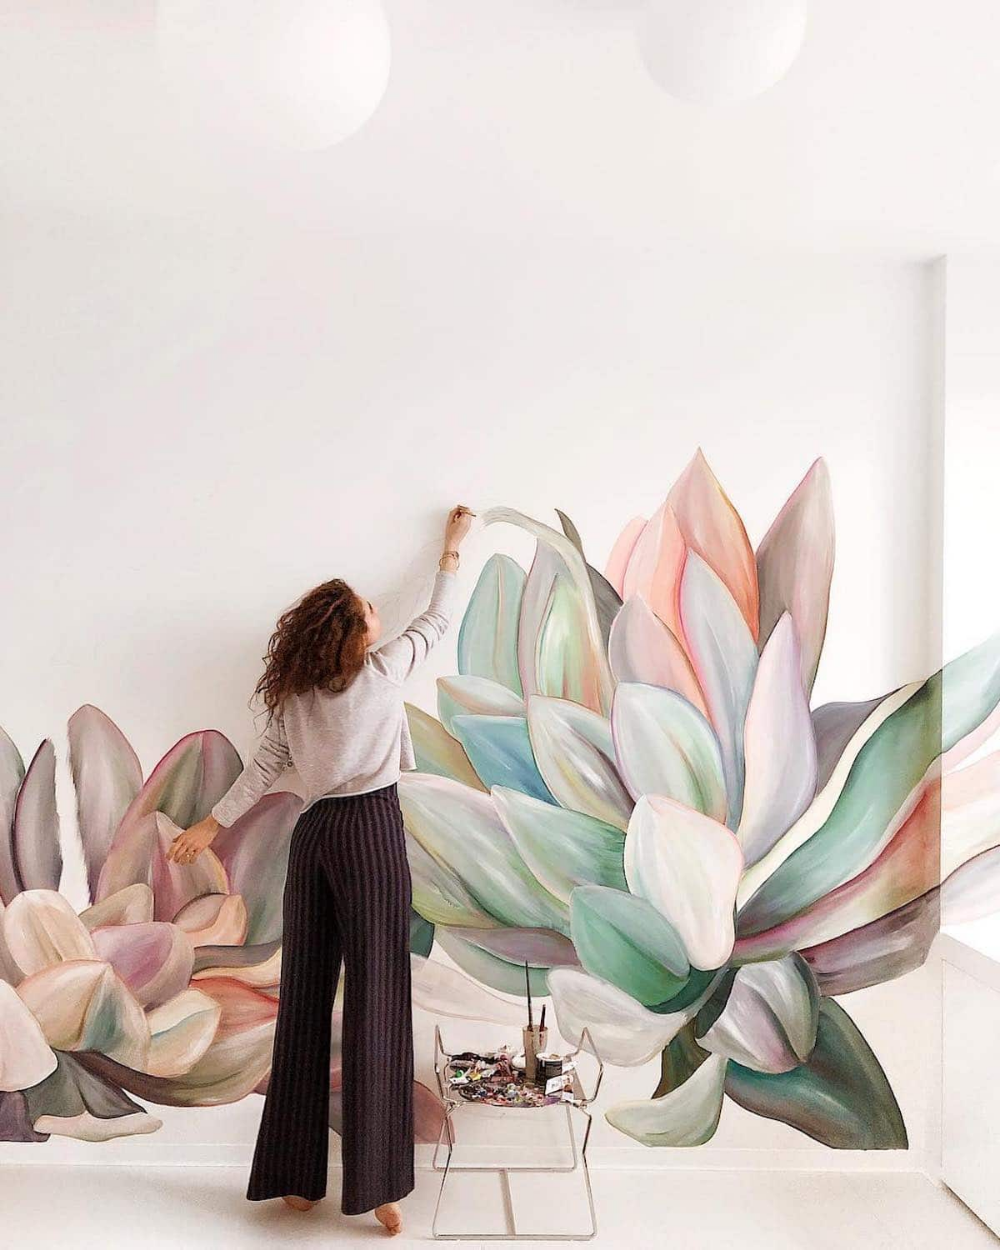 Lovely Flower Murals Transform Ordinary Rooms into Spaces with Blooming Personalities